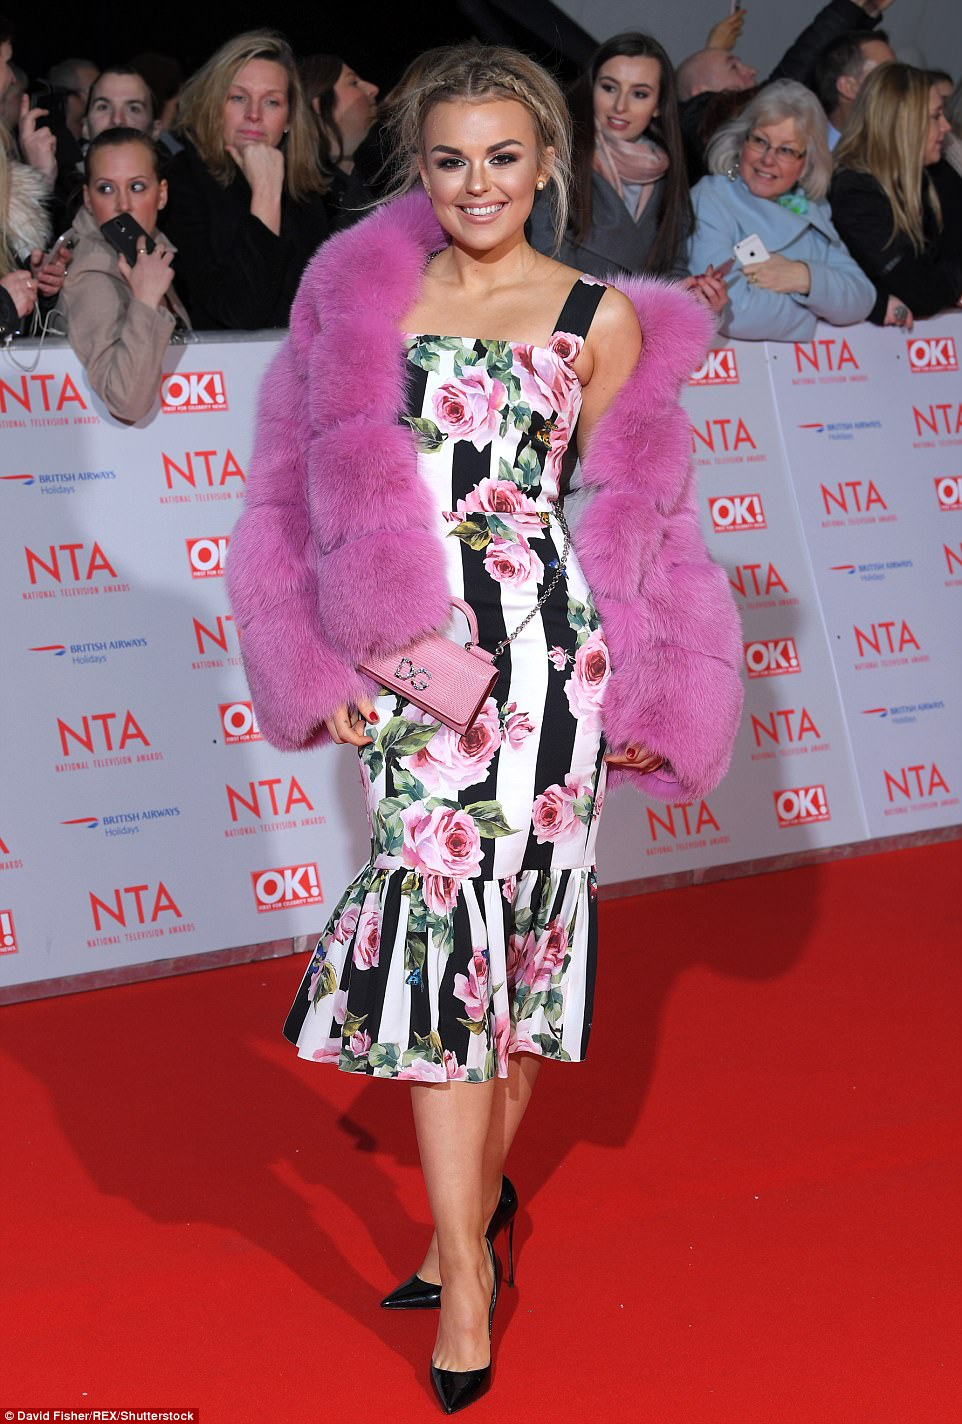 NTAs The Worst Dressed Celebrities On The Red Carpet